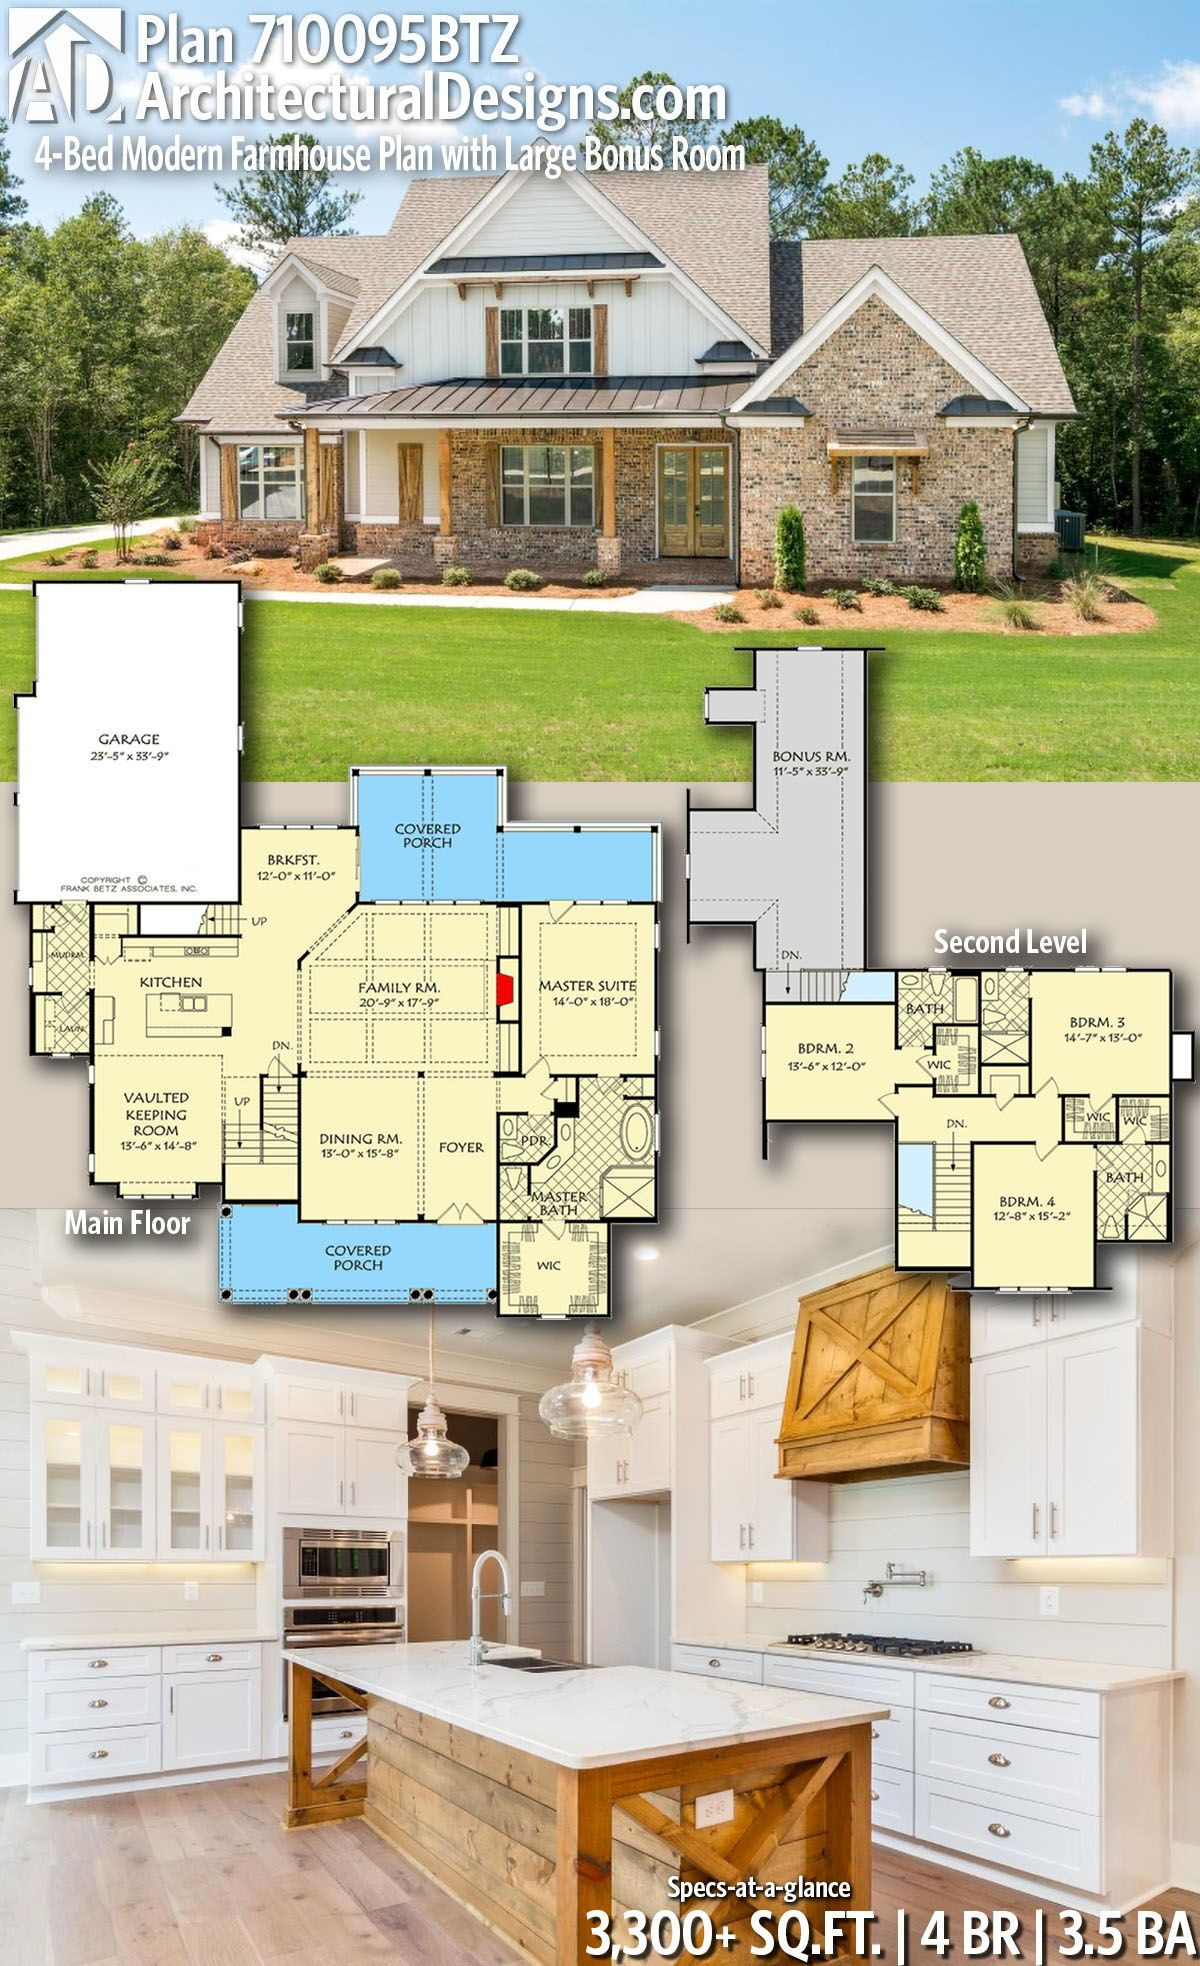 Plan 710095btz 4 Bed Modern Farmhouse Plan With Large Bonus Room Modern Farmhouse Plans House Plans Farmhouse New House Plans